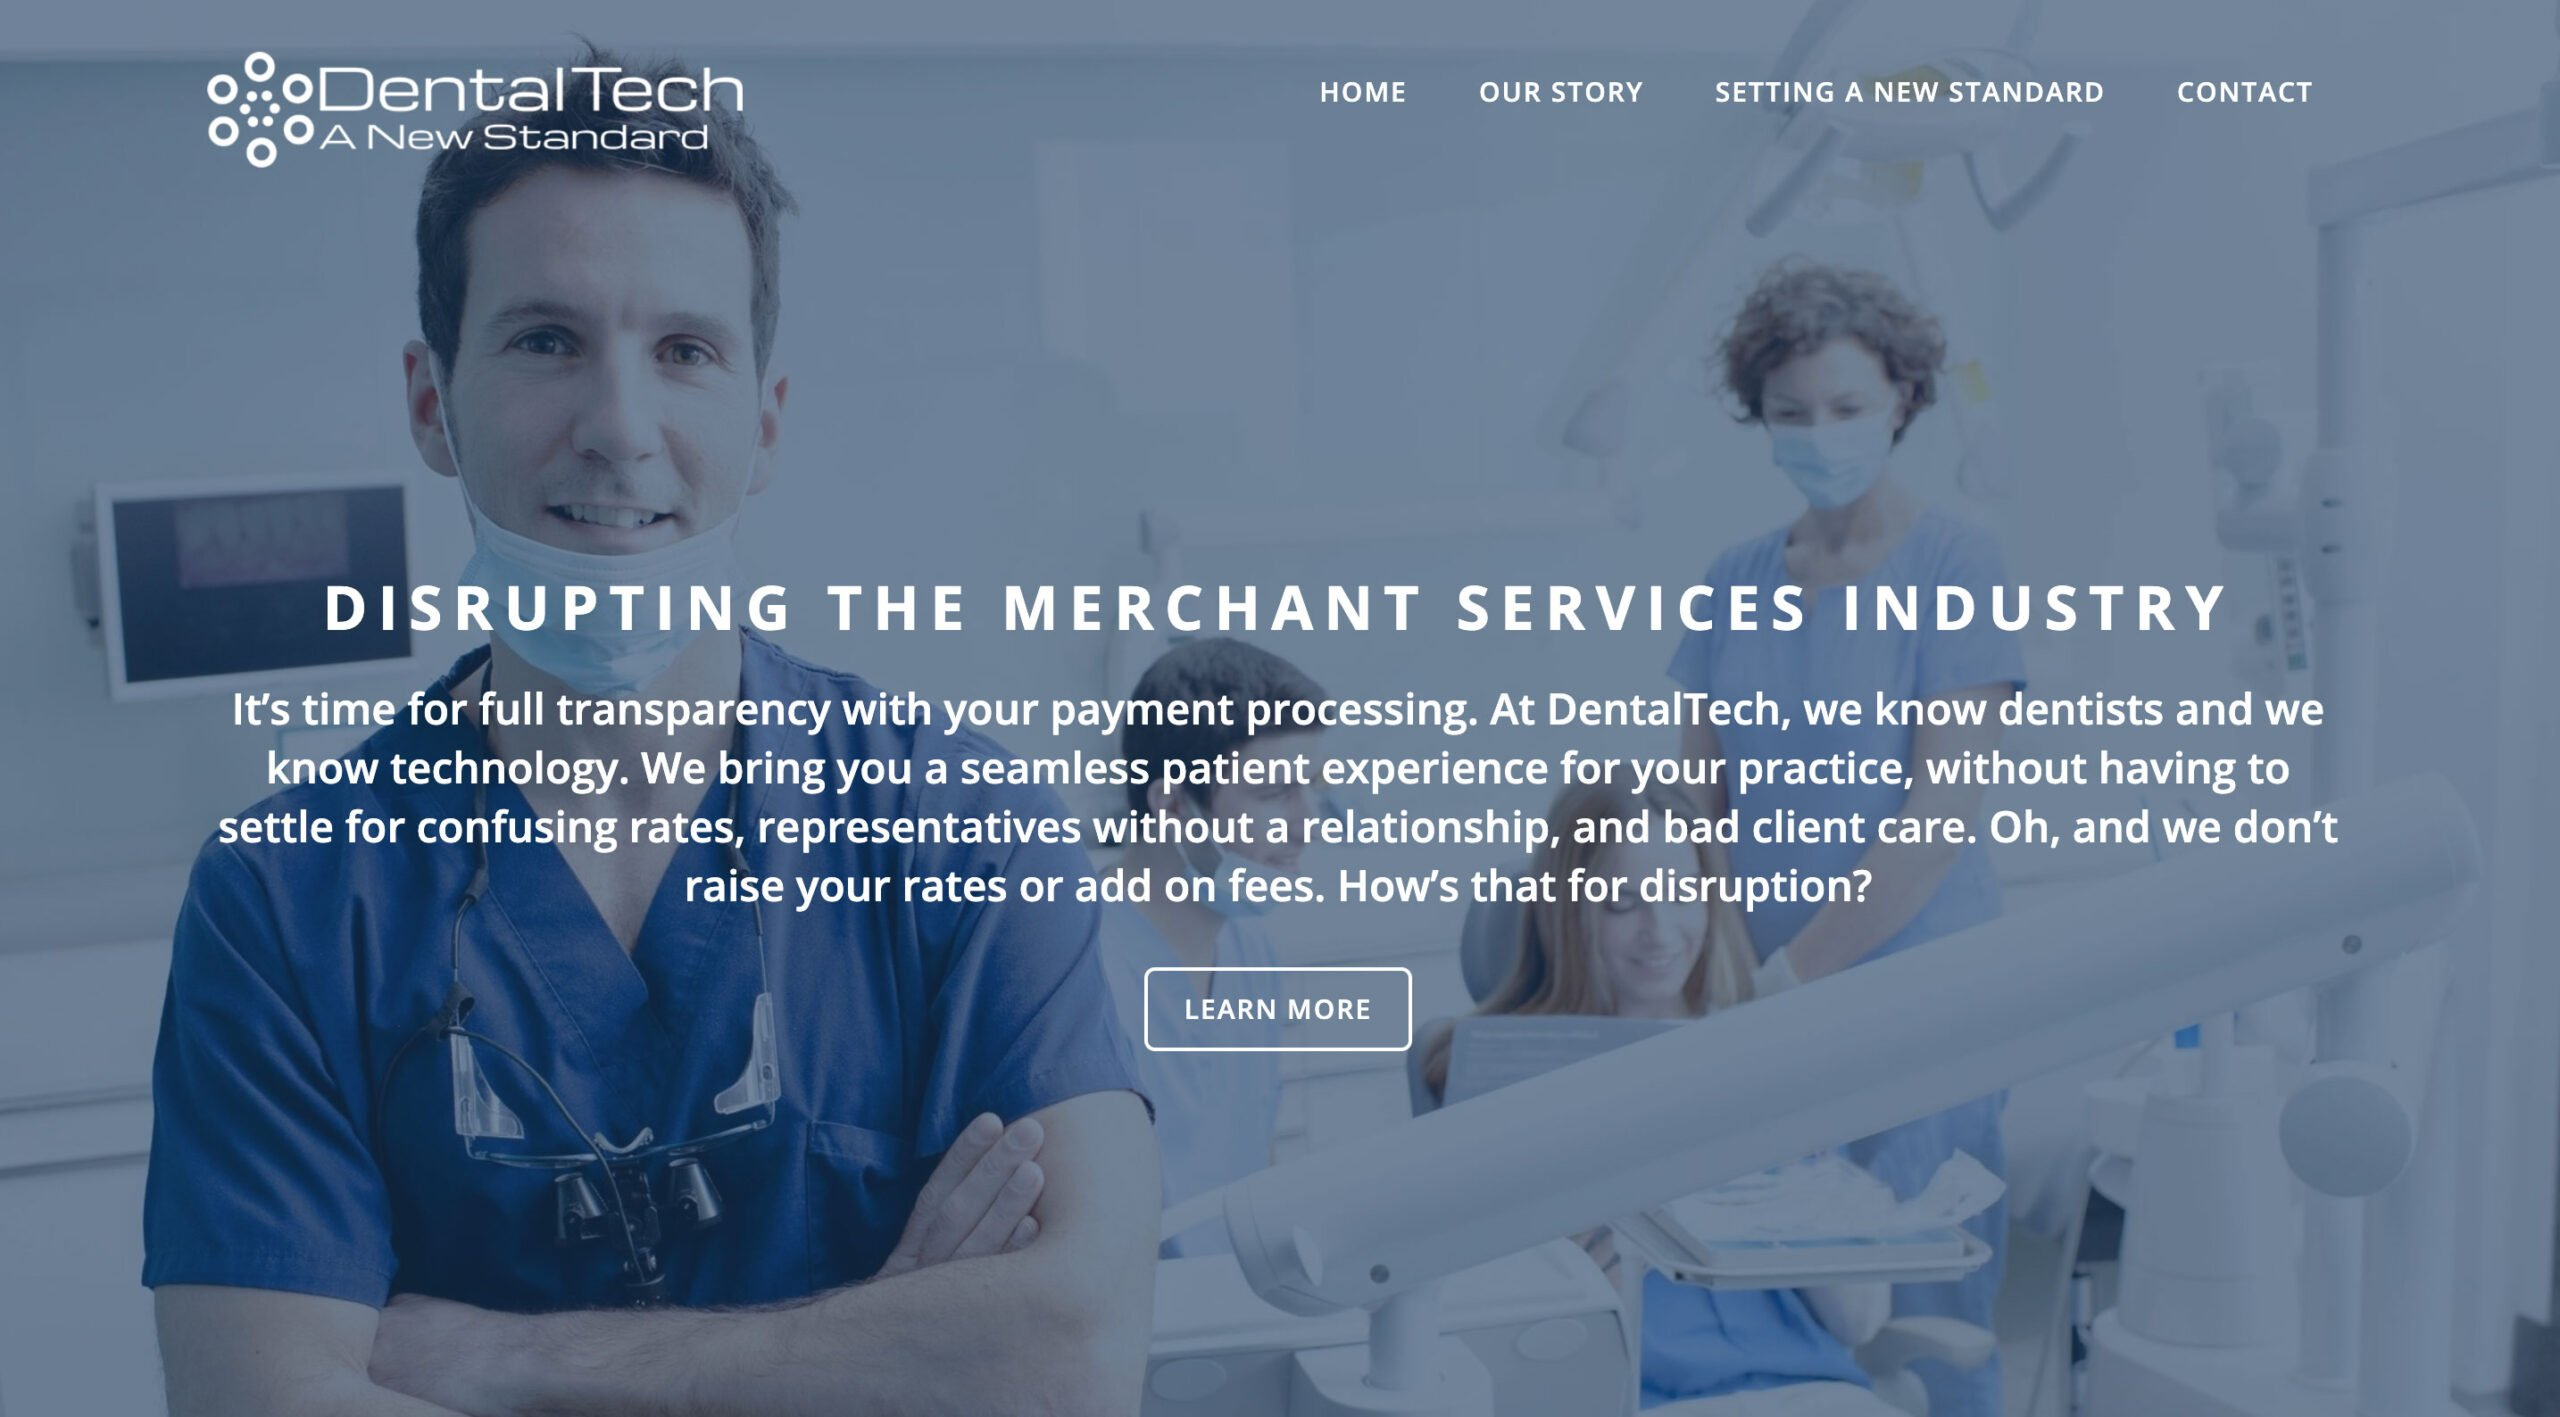 Dental Tech website design by SkyCastle Productions Atlanta Website Design firm